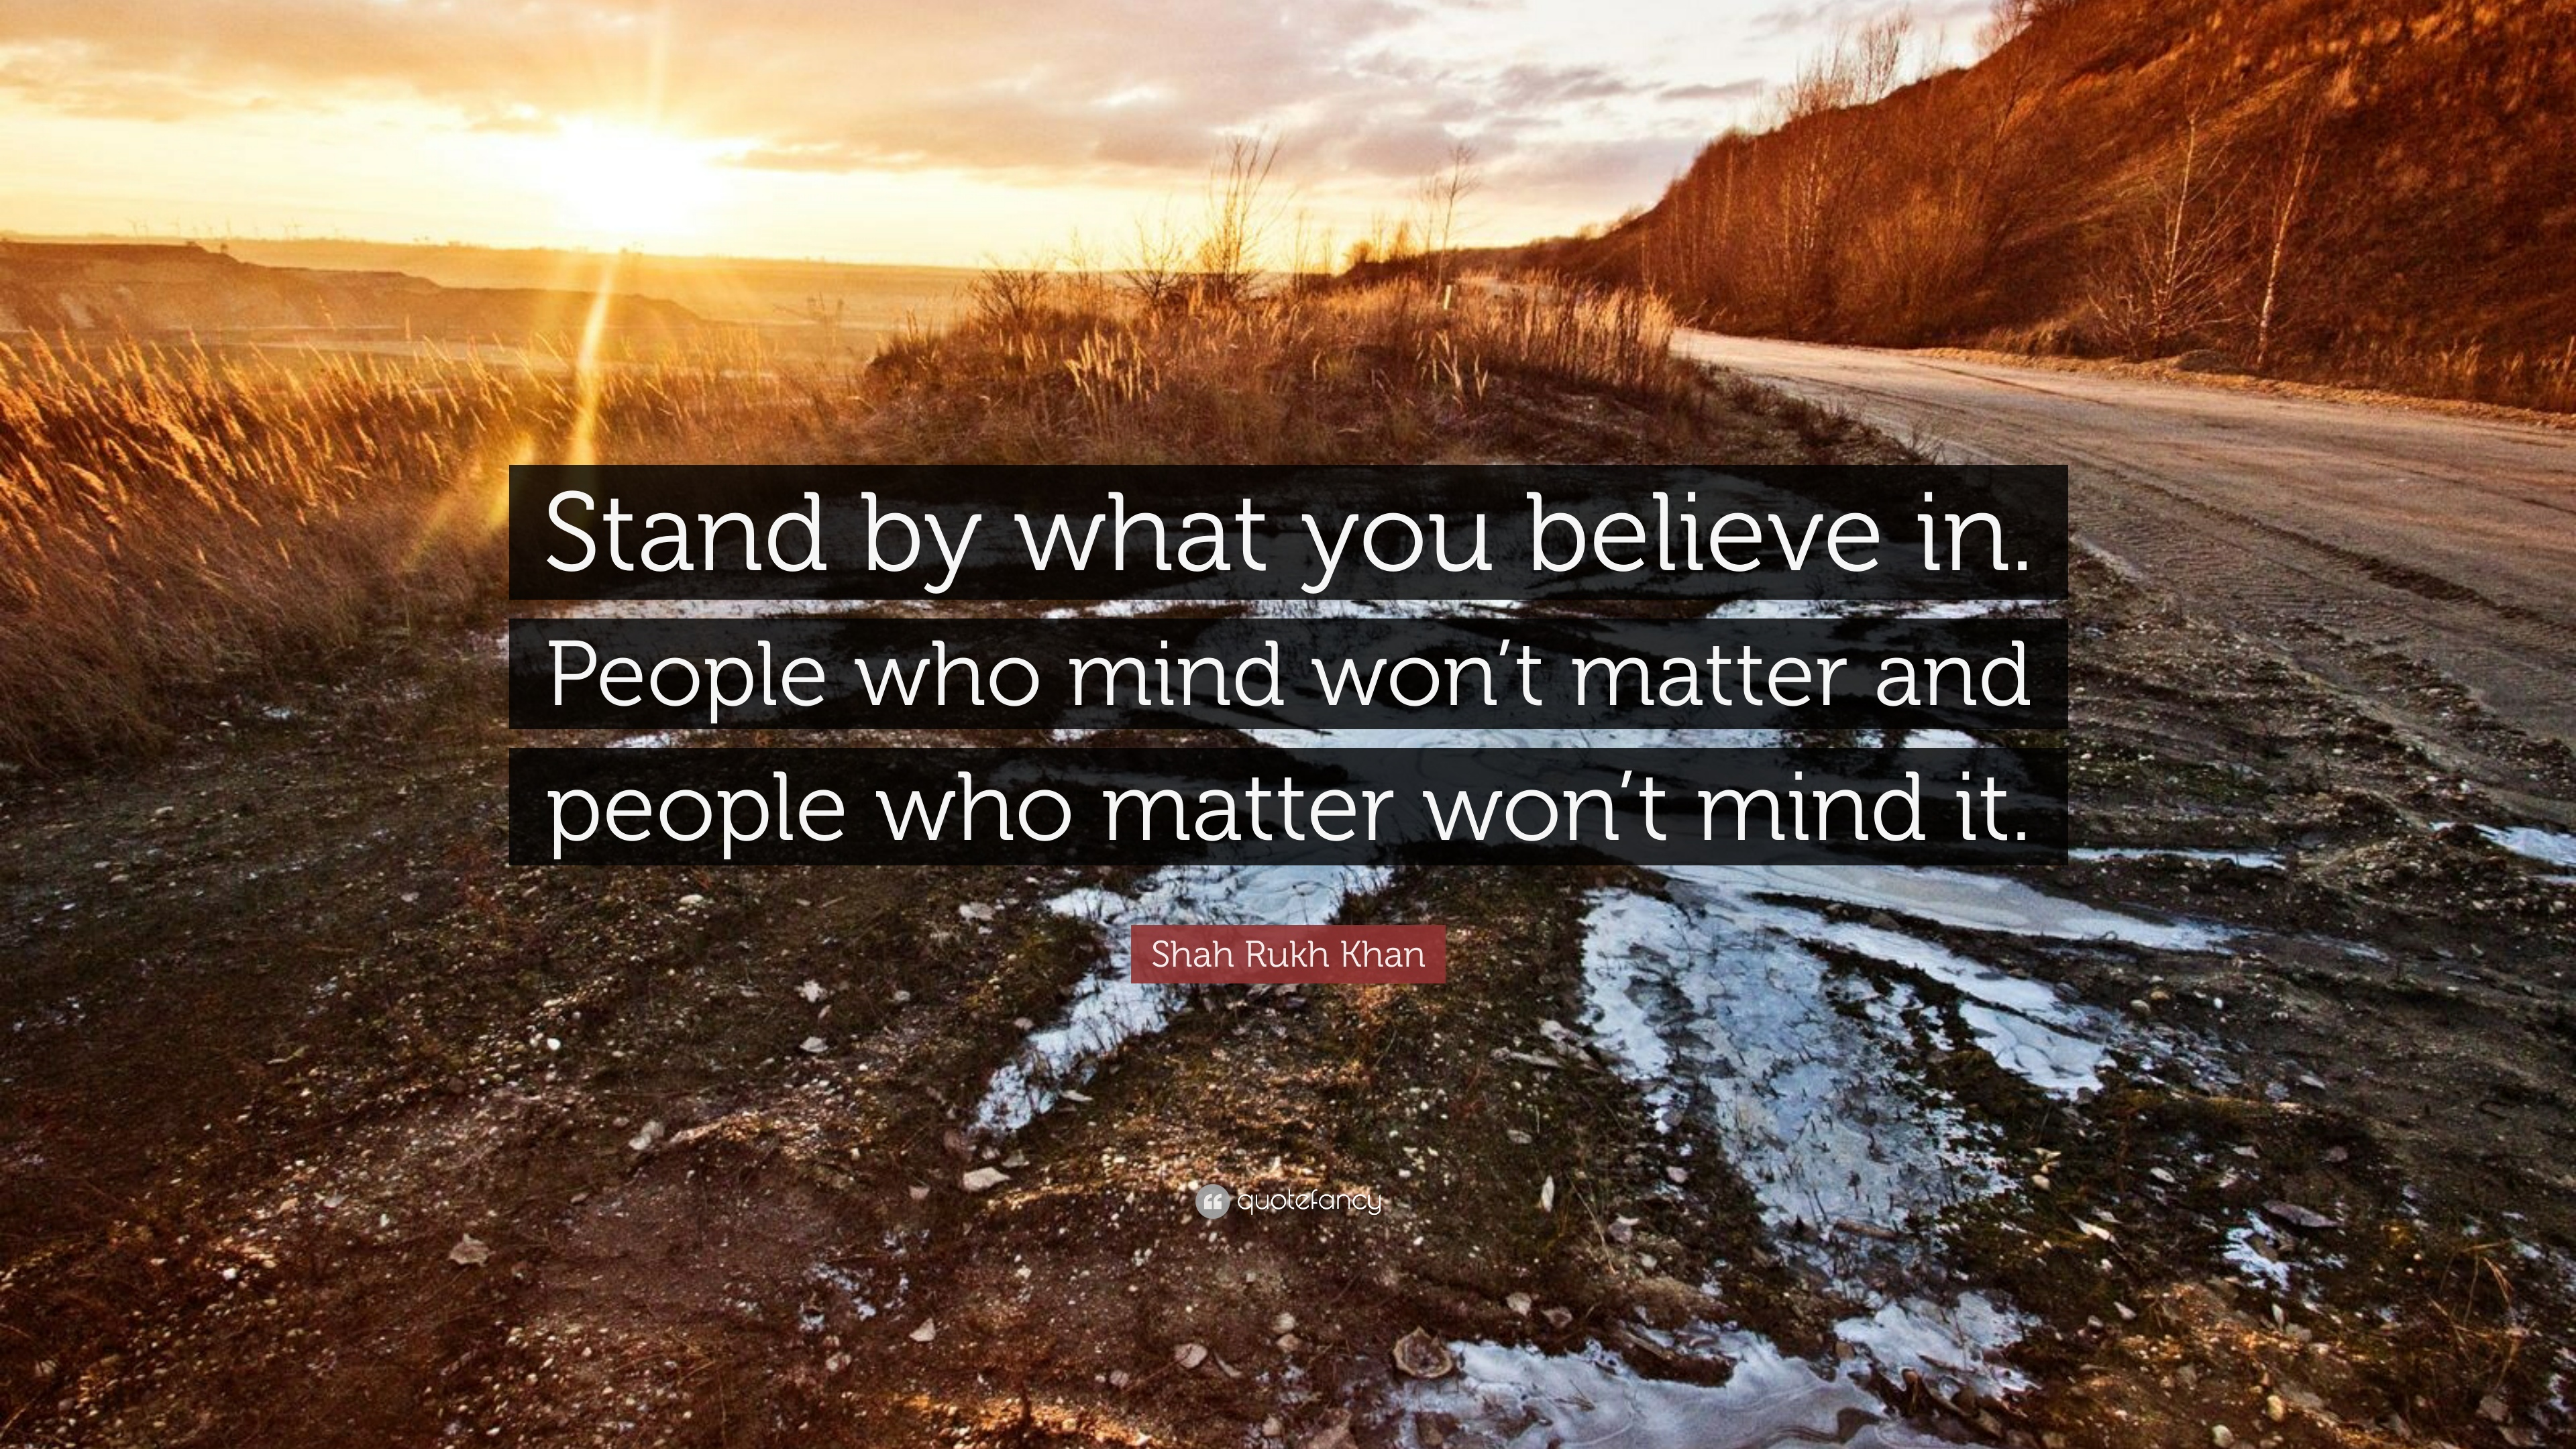 Shah Rukh Khan Quote Stand By What You Believe In People Who Mind